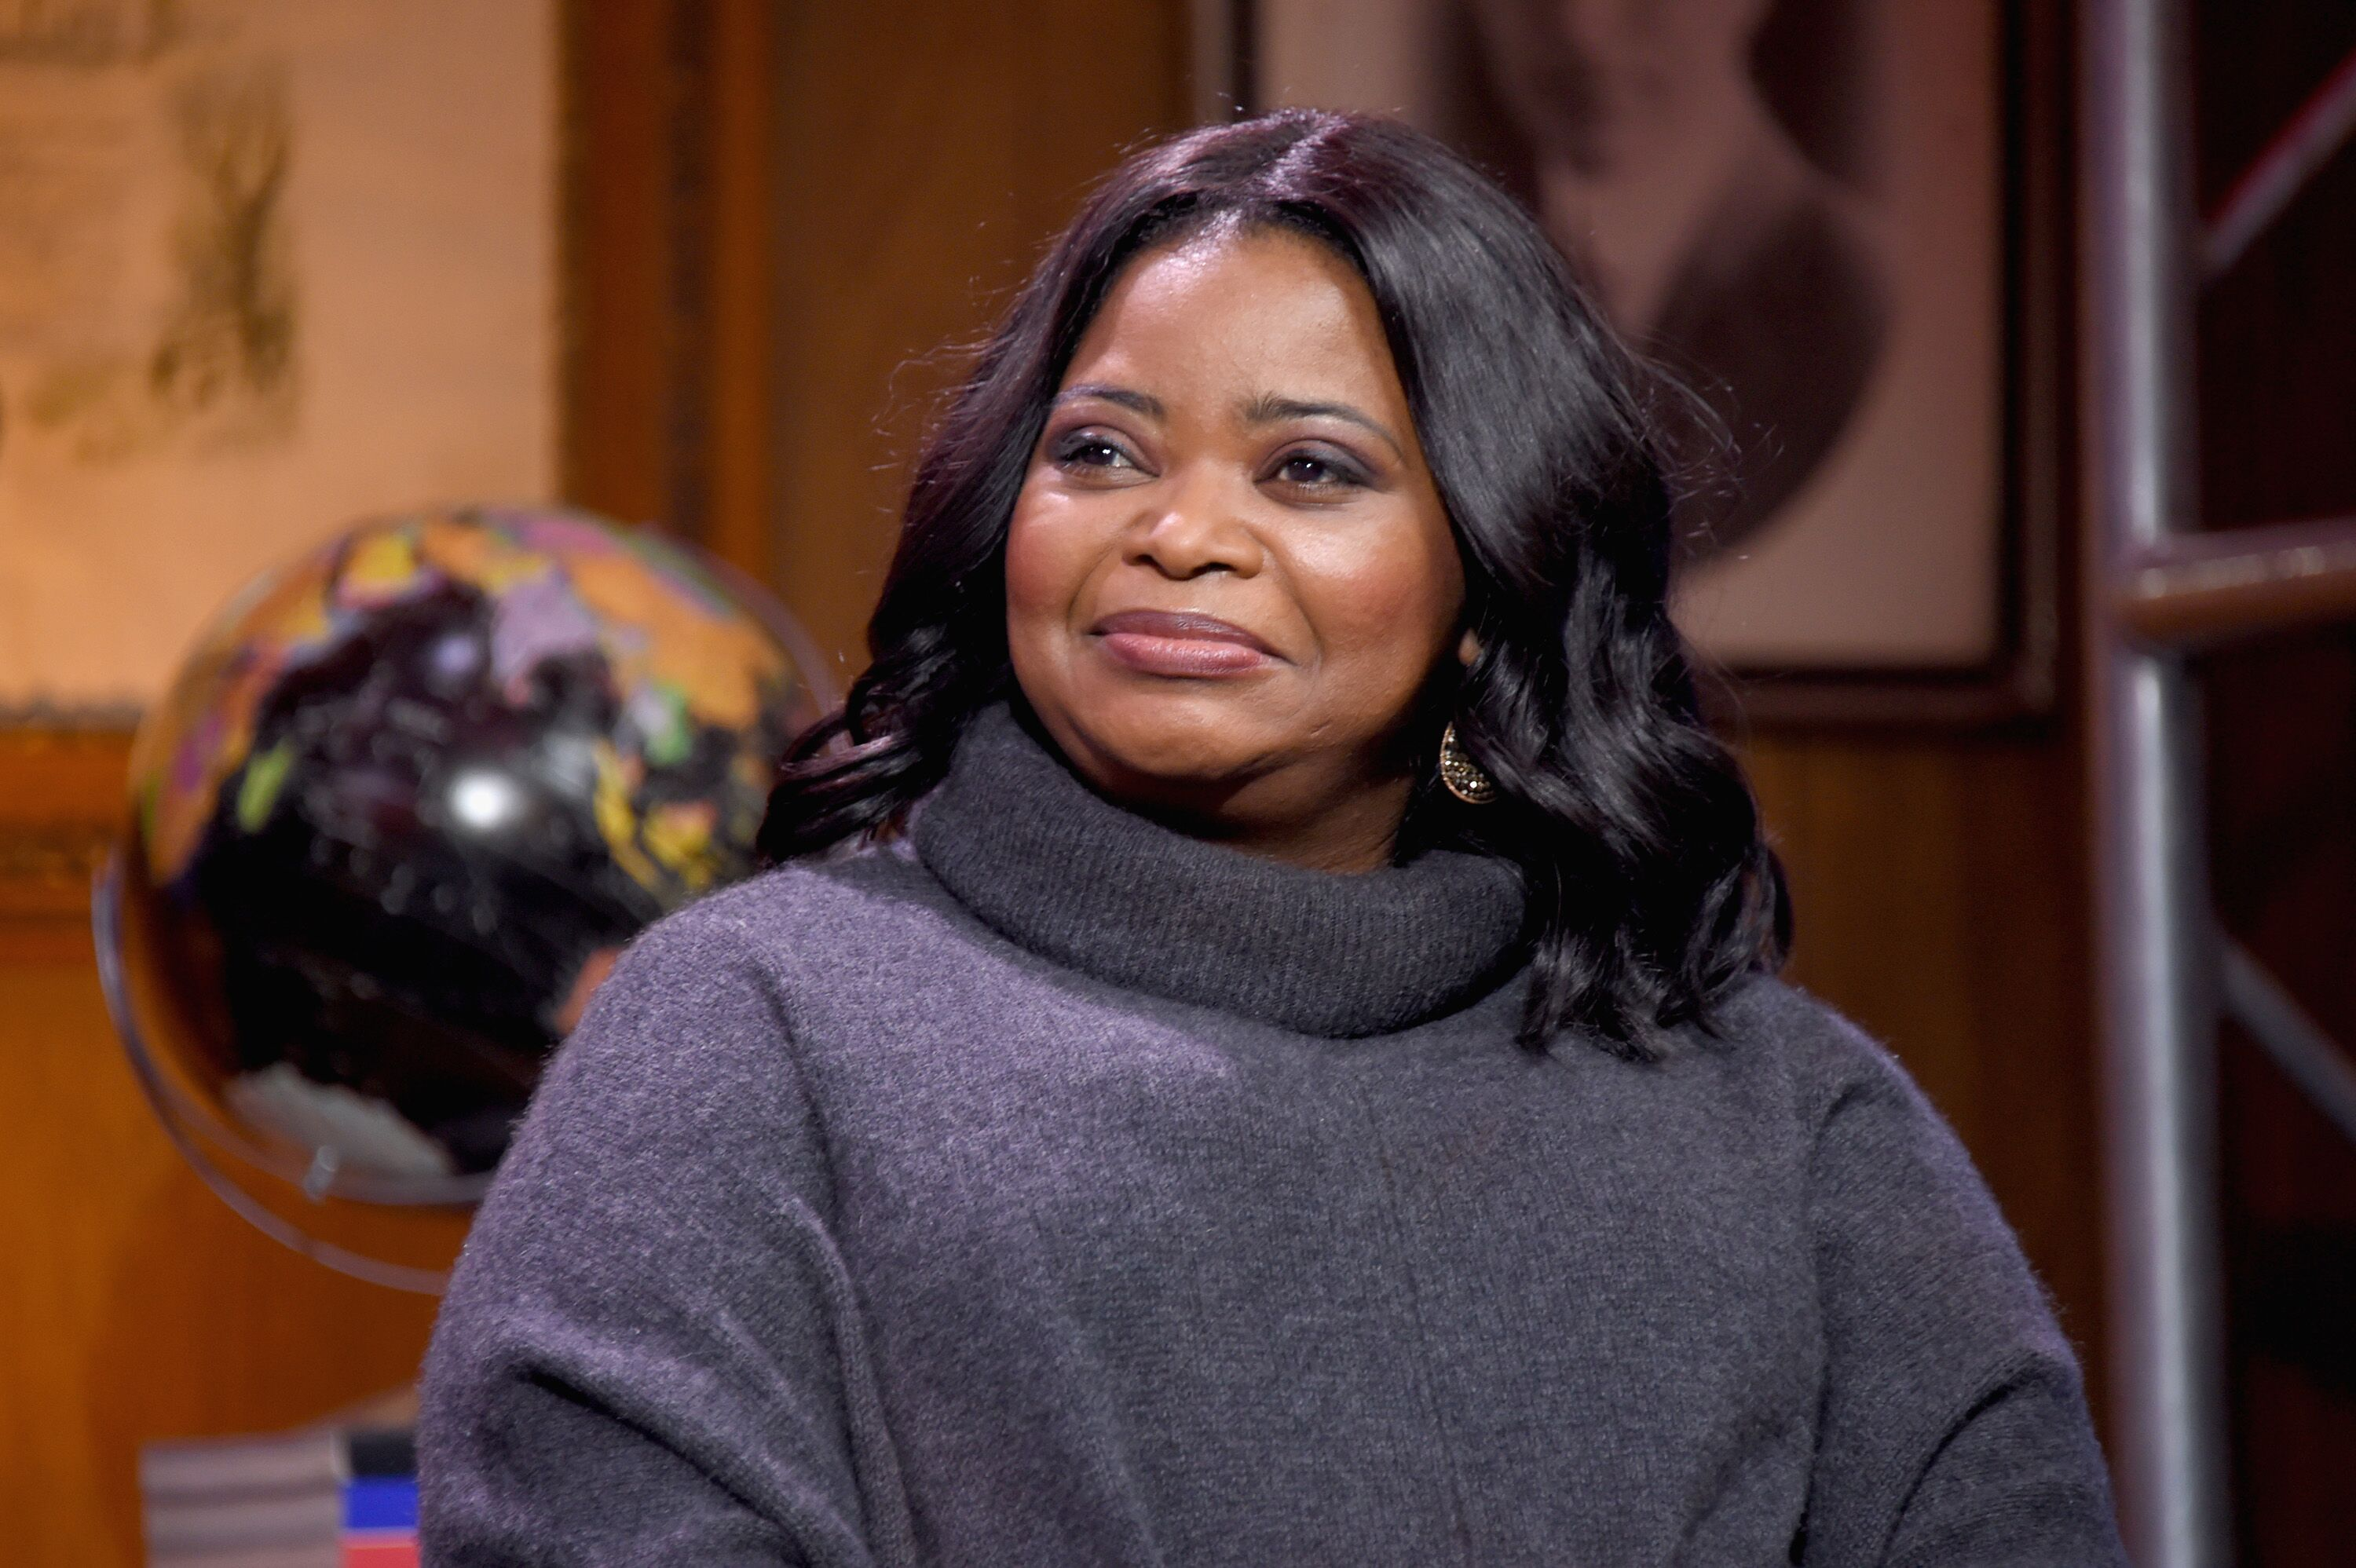 Octavia Spencer at ABC interview/ Source: Getty Images